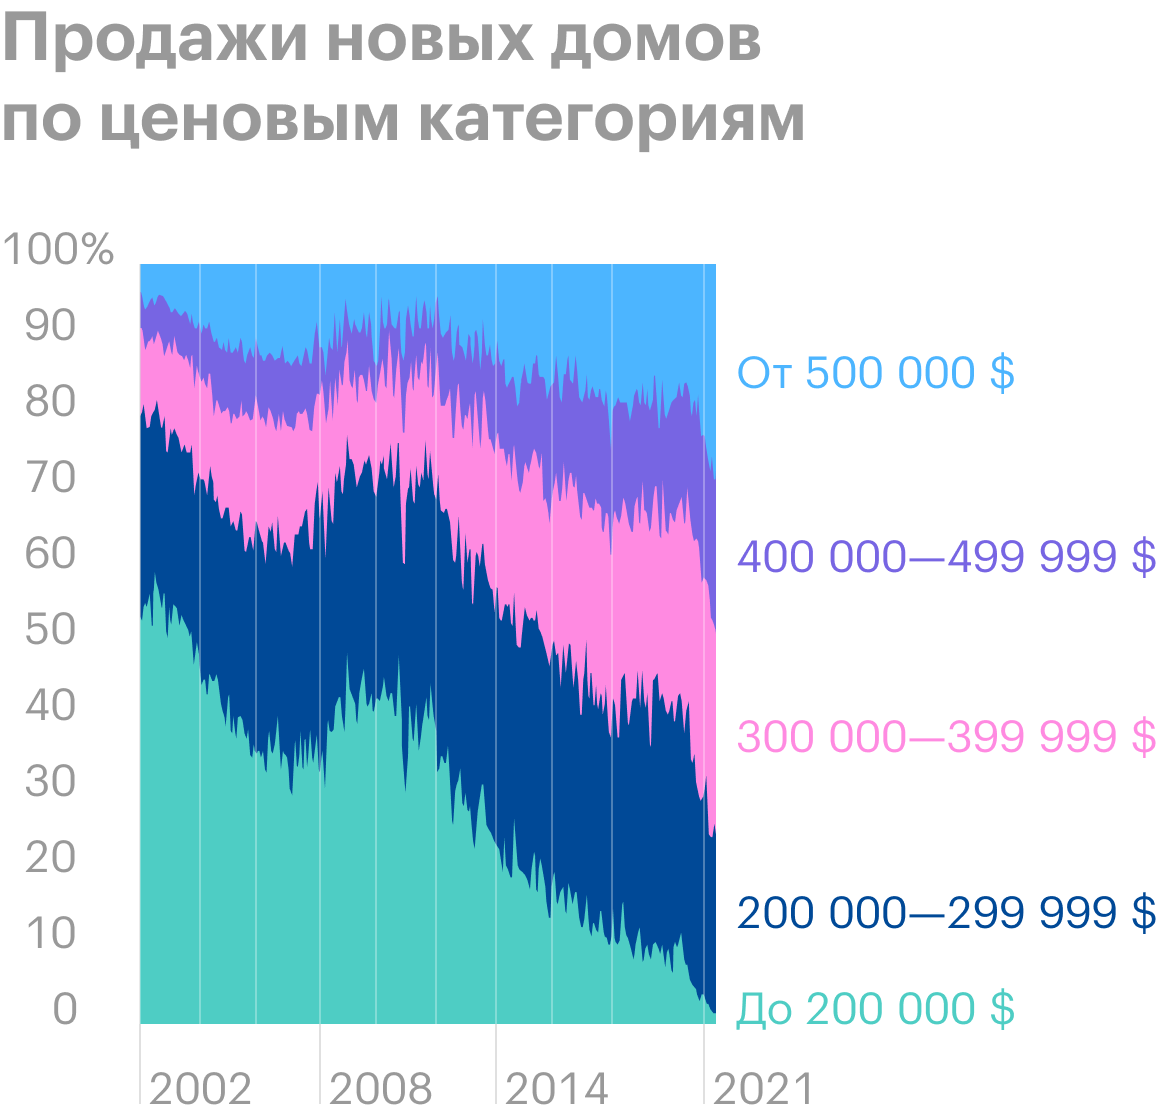 Источник: Daily Shot, The distribution of new home sales by price range